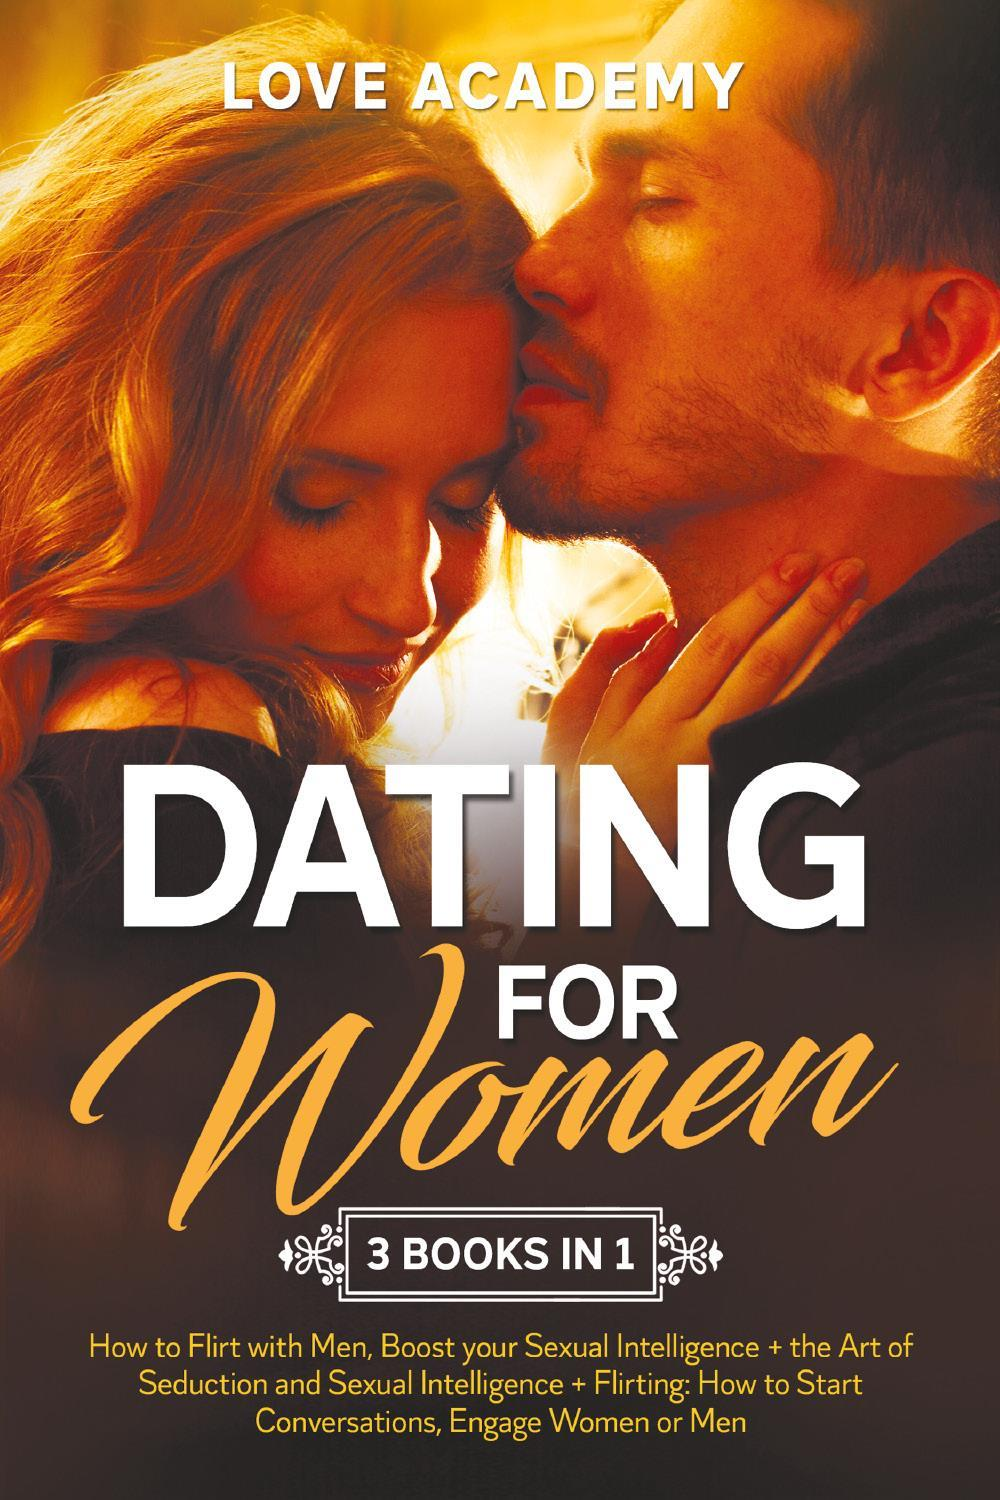 Dating for Woman (3 Books in 1). How to Flirt with Men, Boost your Sexual Intelligence + the Art of Seduction and Sexual Intelligence + Flirting: How to Start Conversations, Engage Women or Men